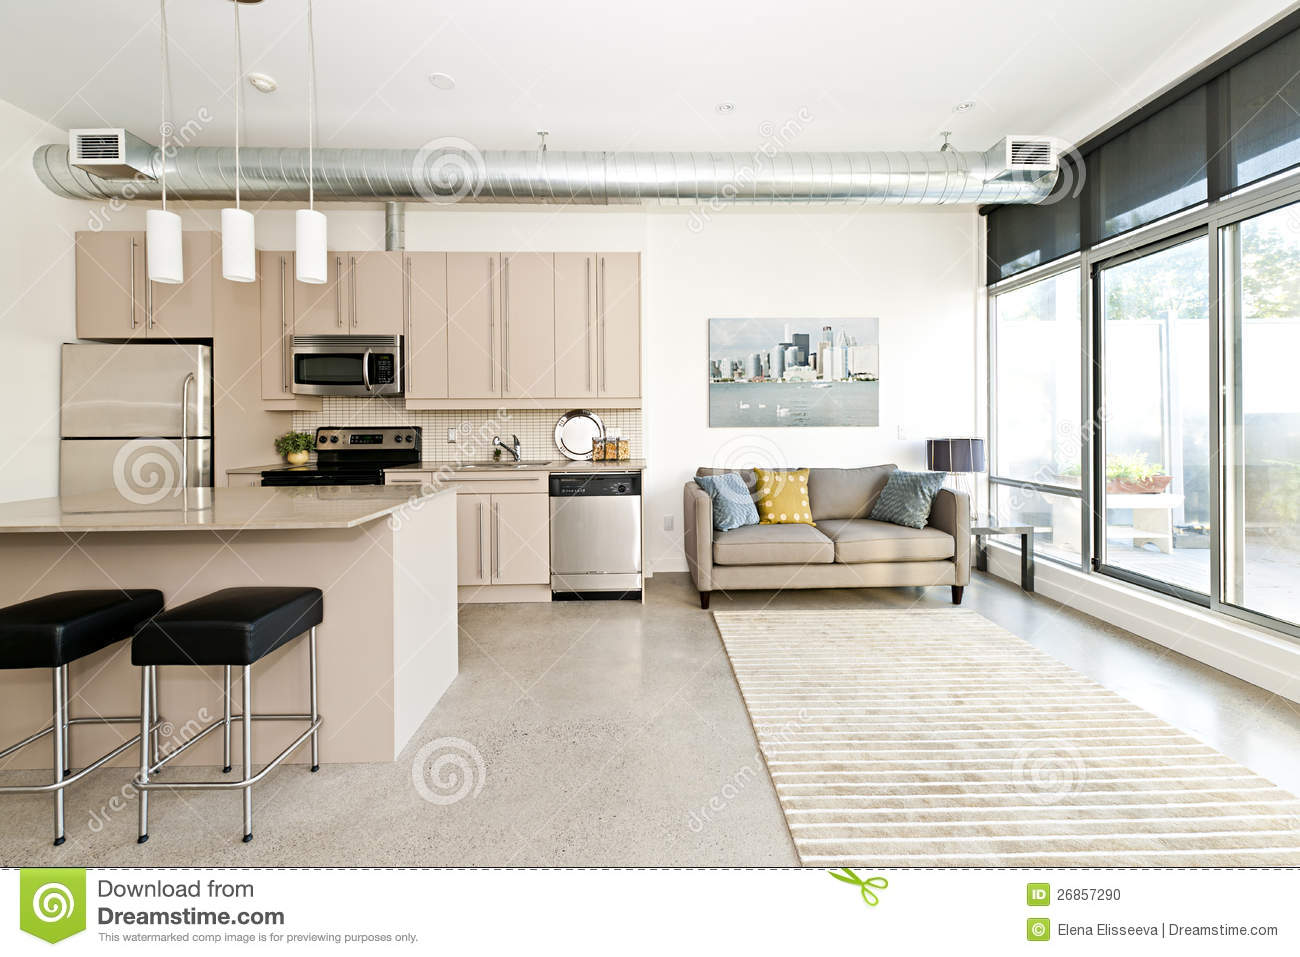 Efficiency Apartment Vs Studio Modern Condo Kitchen And Living Room Stock Photo Image